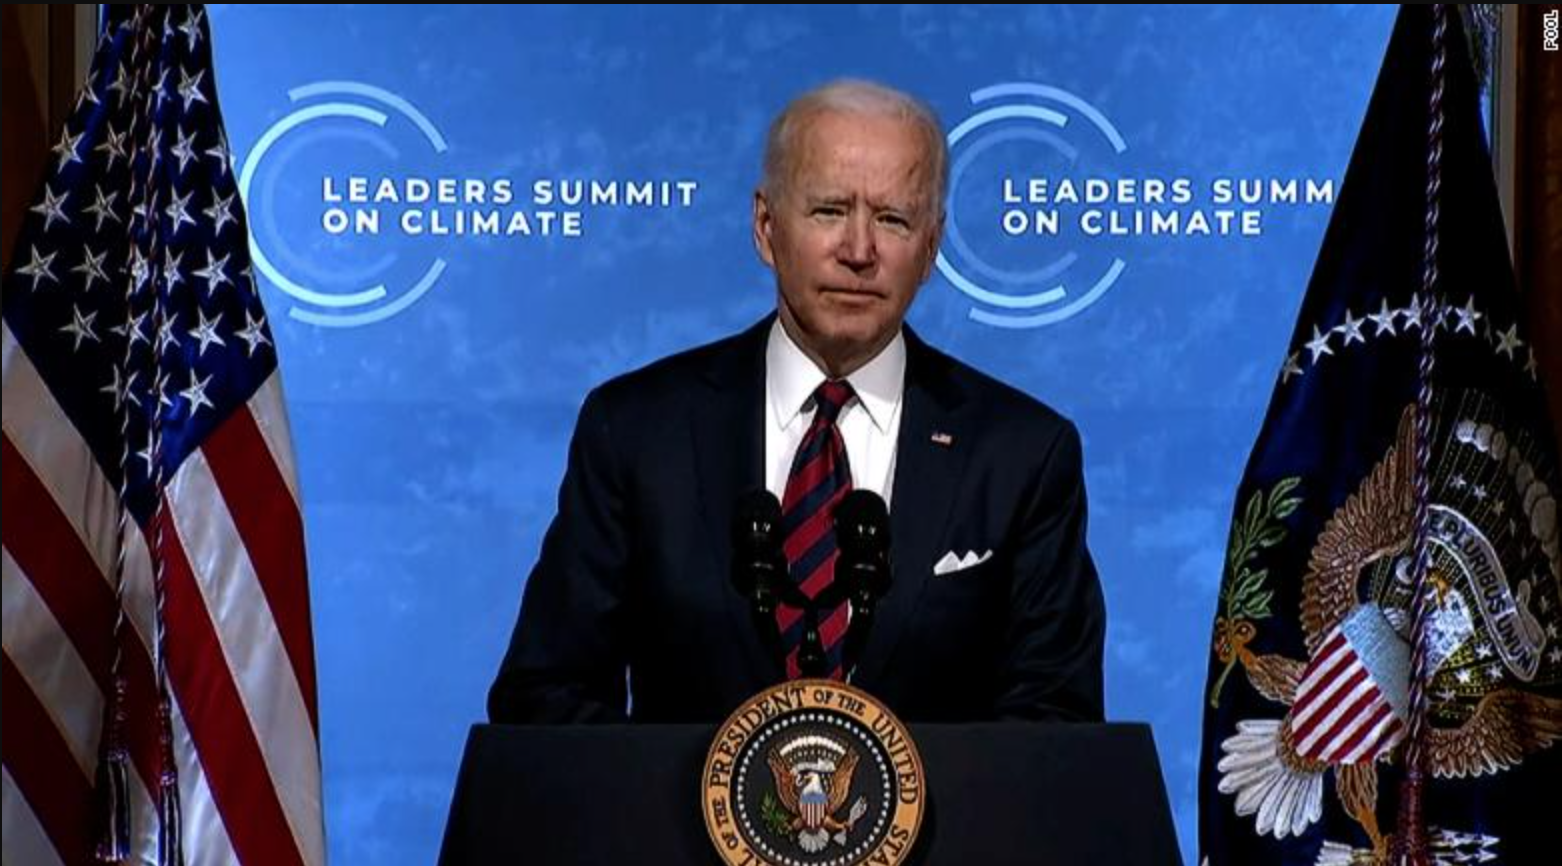 Image of President Biden at Leaders Summit On Climate